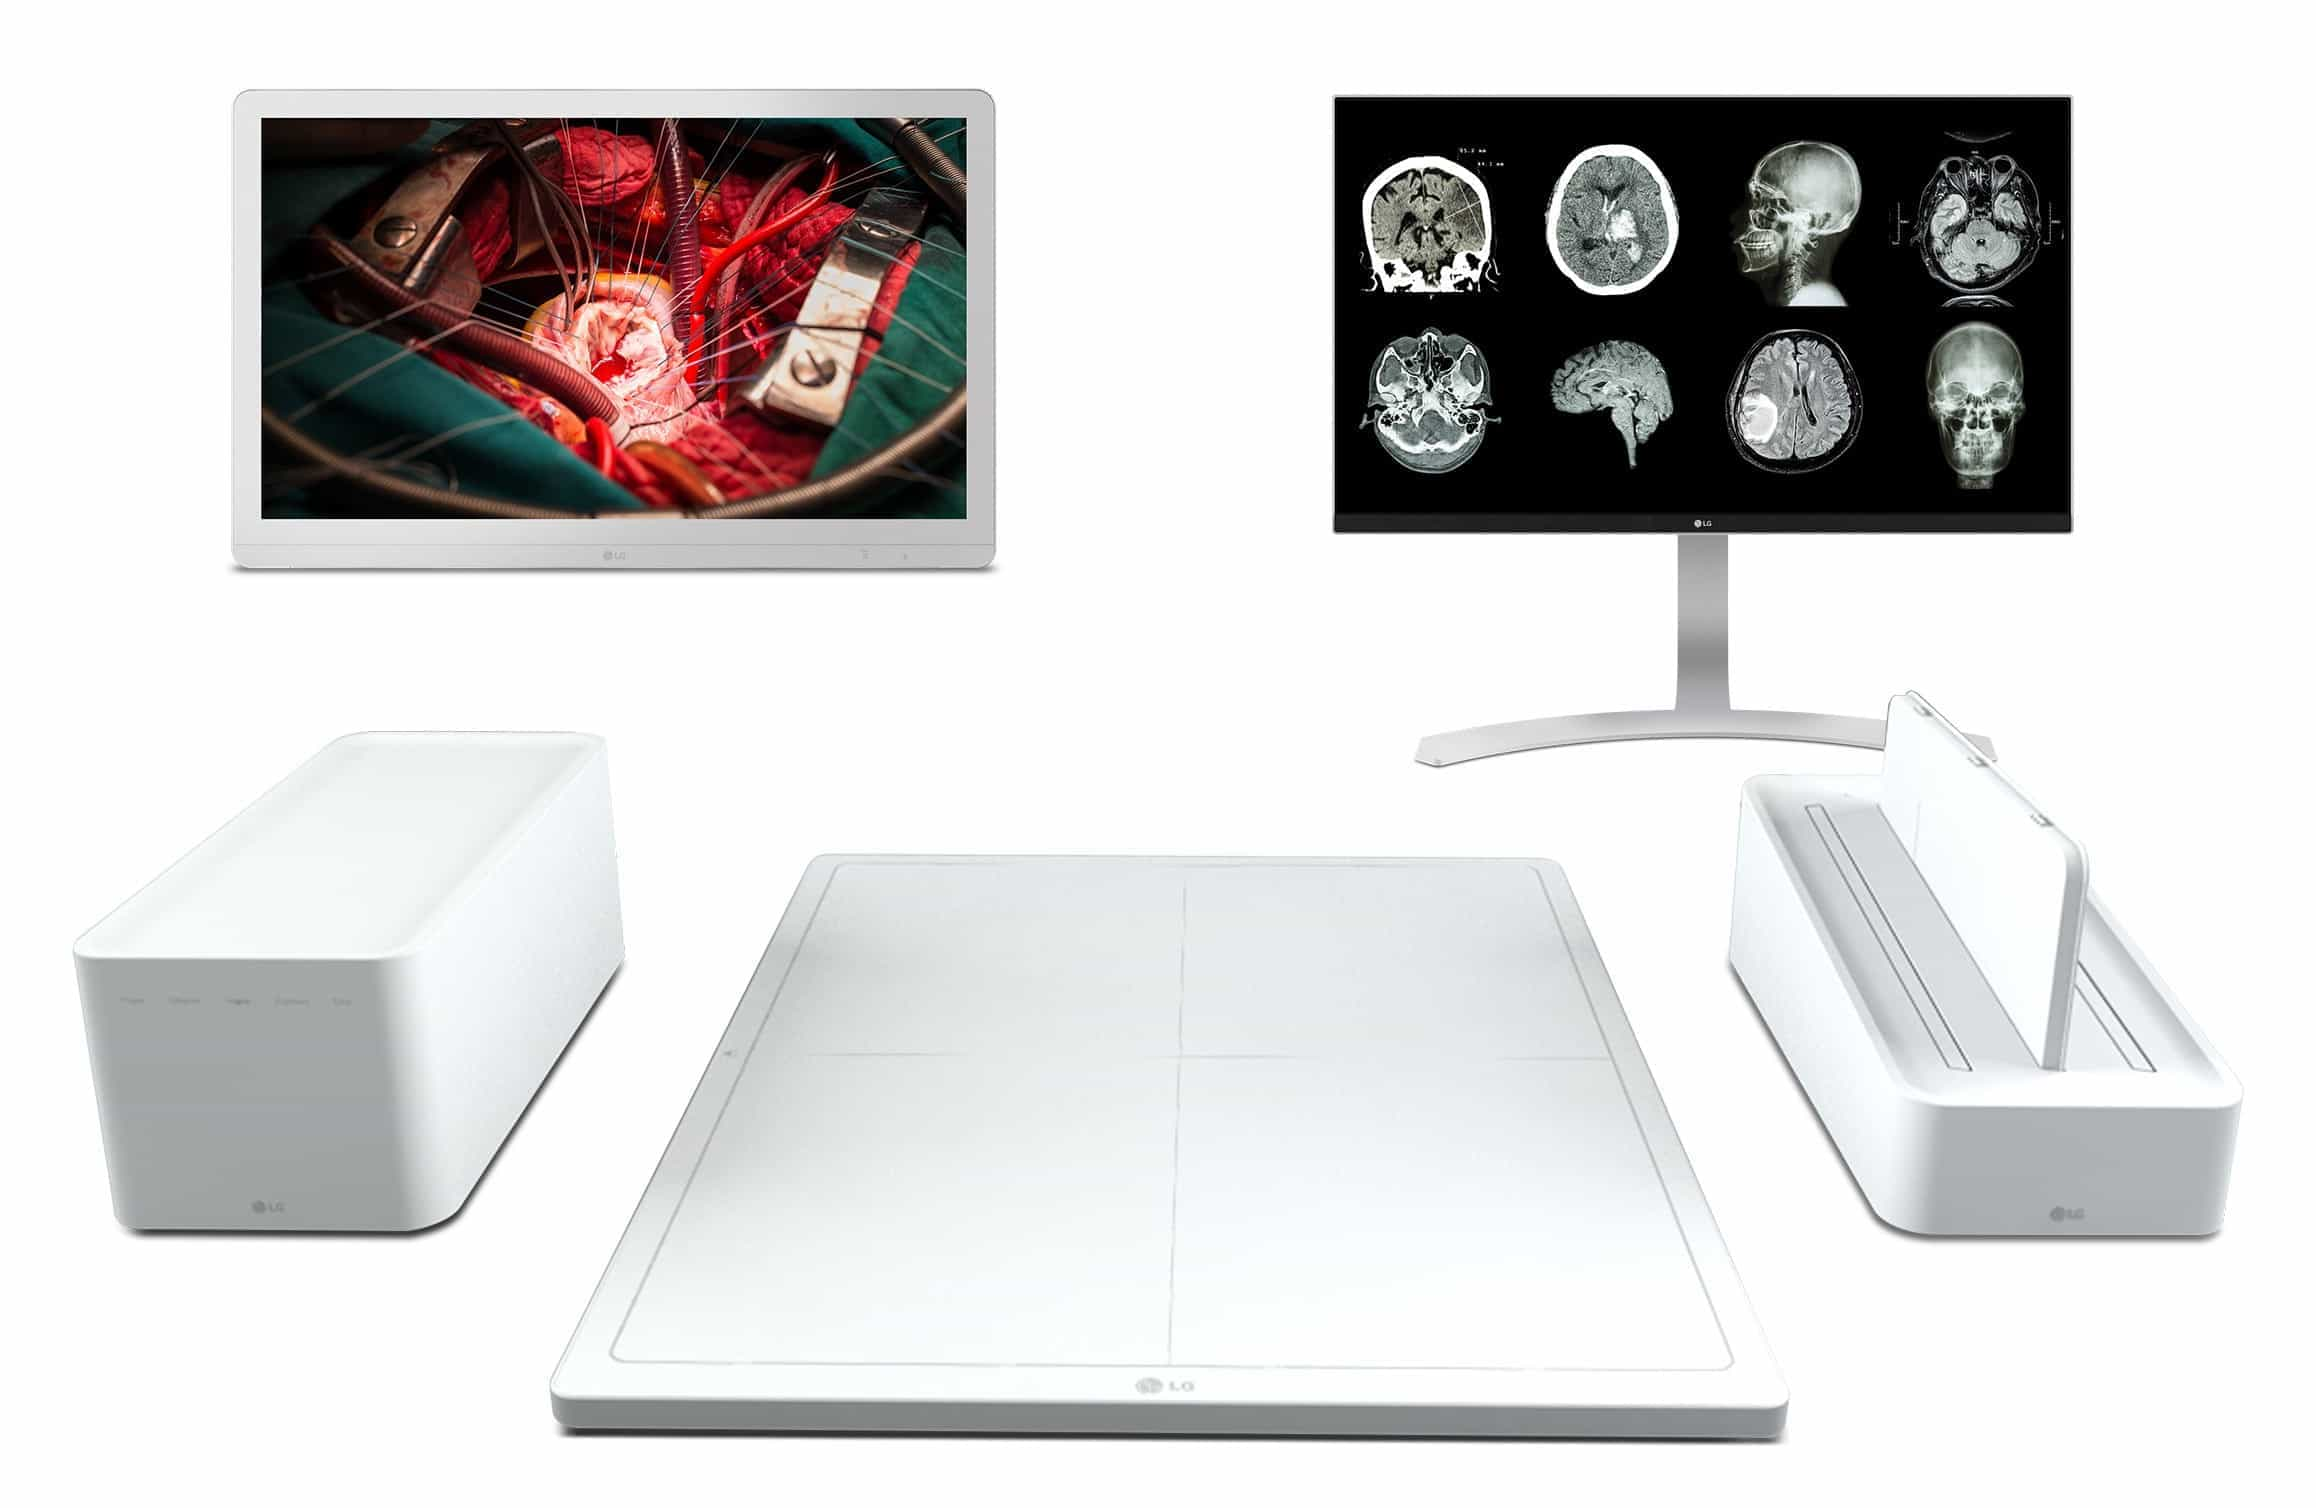 itsitio-distribucion-latam-dispositivos-surgical-monitor_clinical-review-monitor_dxd